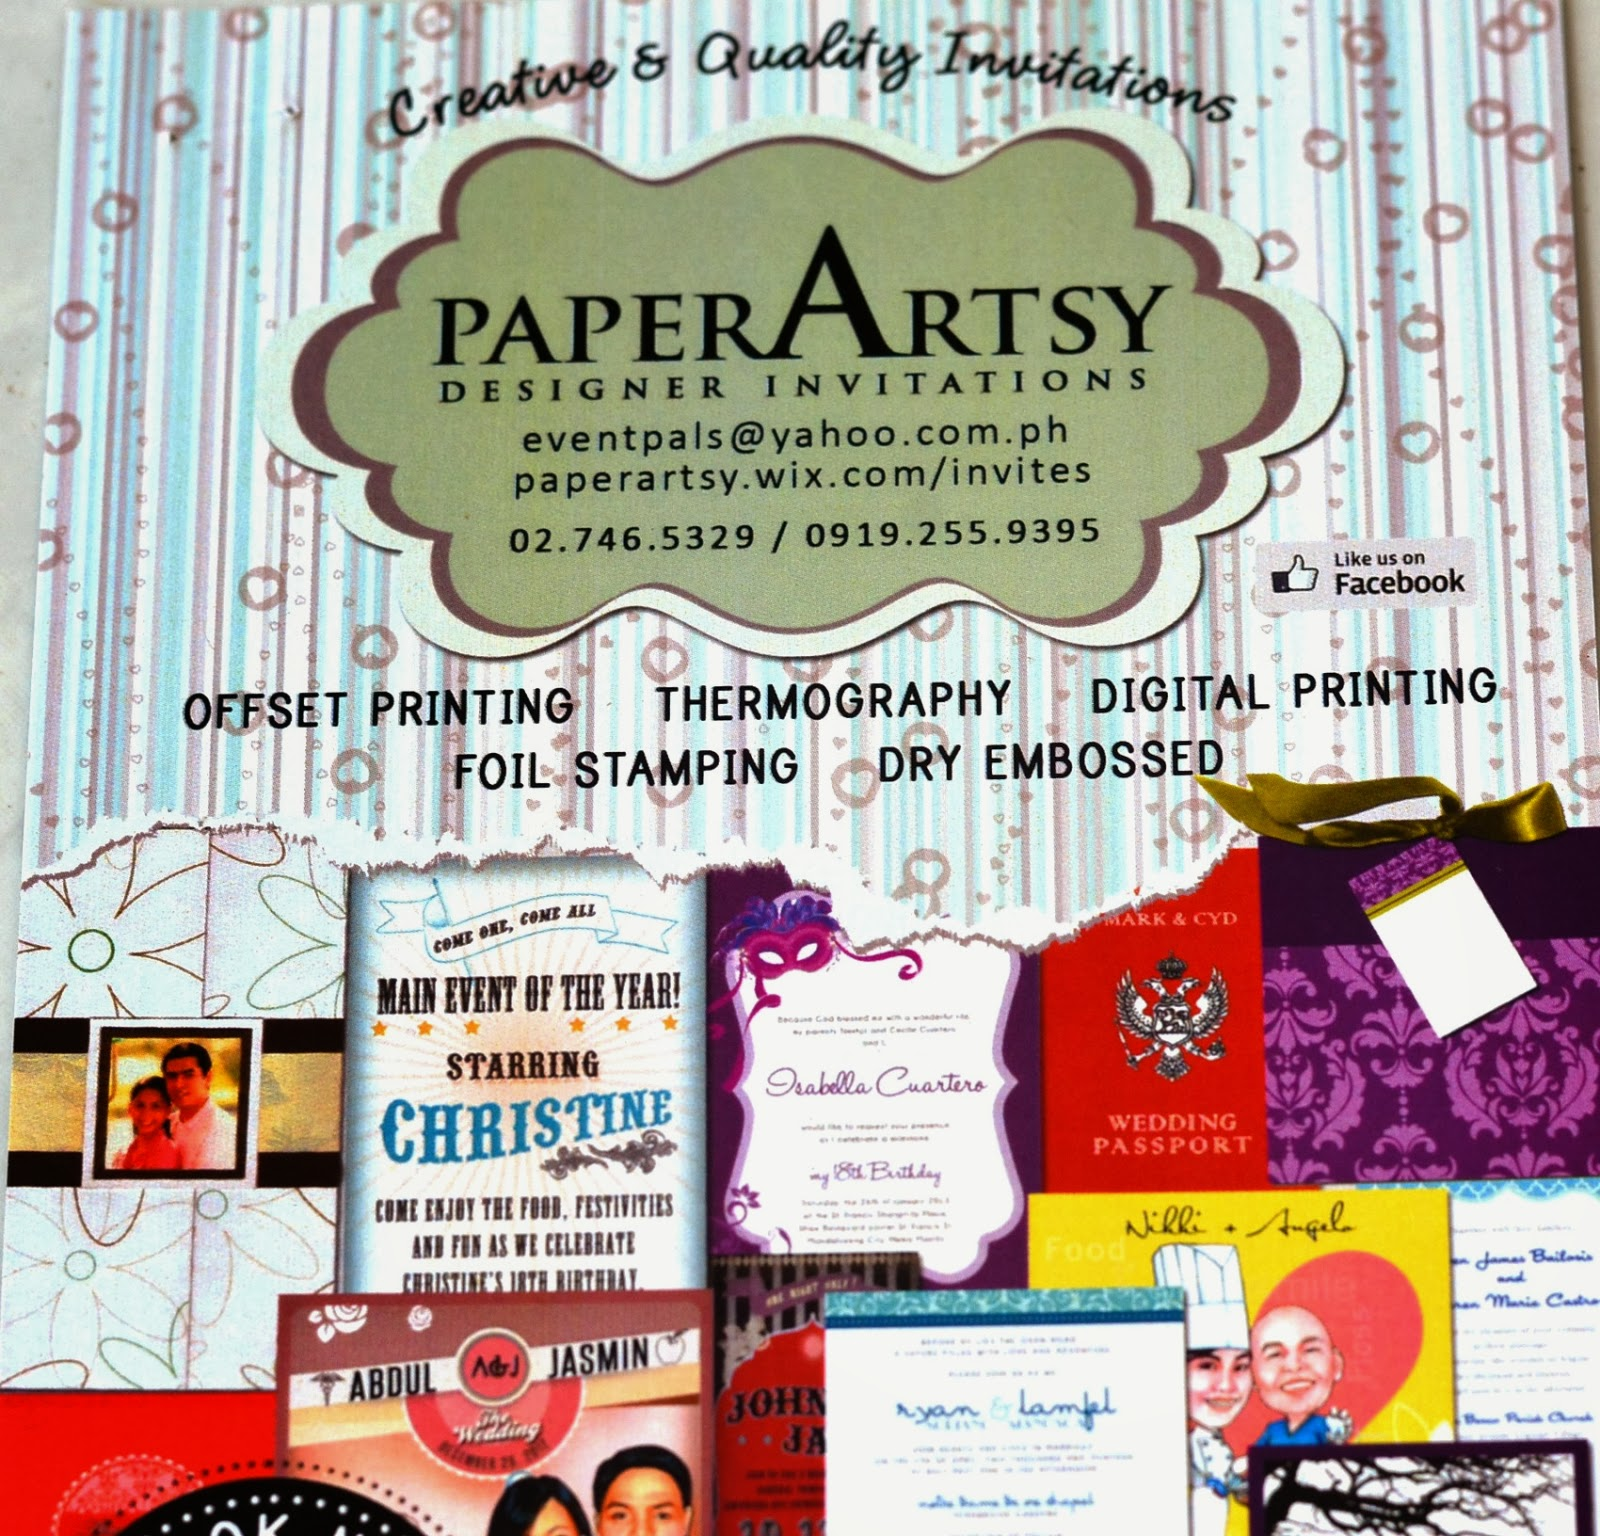 Debut themes and ideas debut invitation suppliers debut invitation suppliers stopboris Gallery